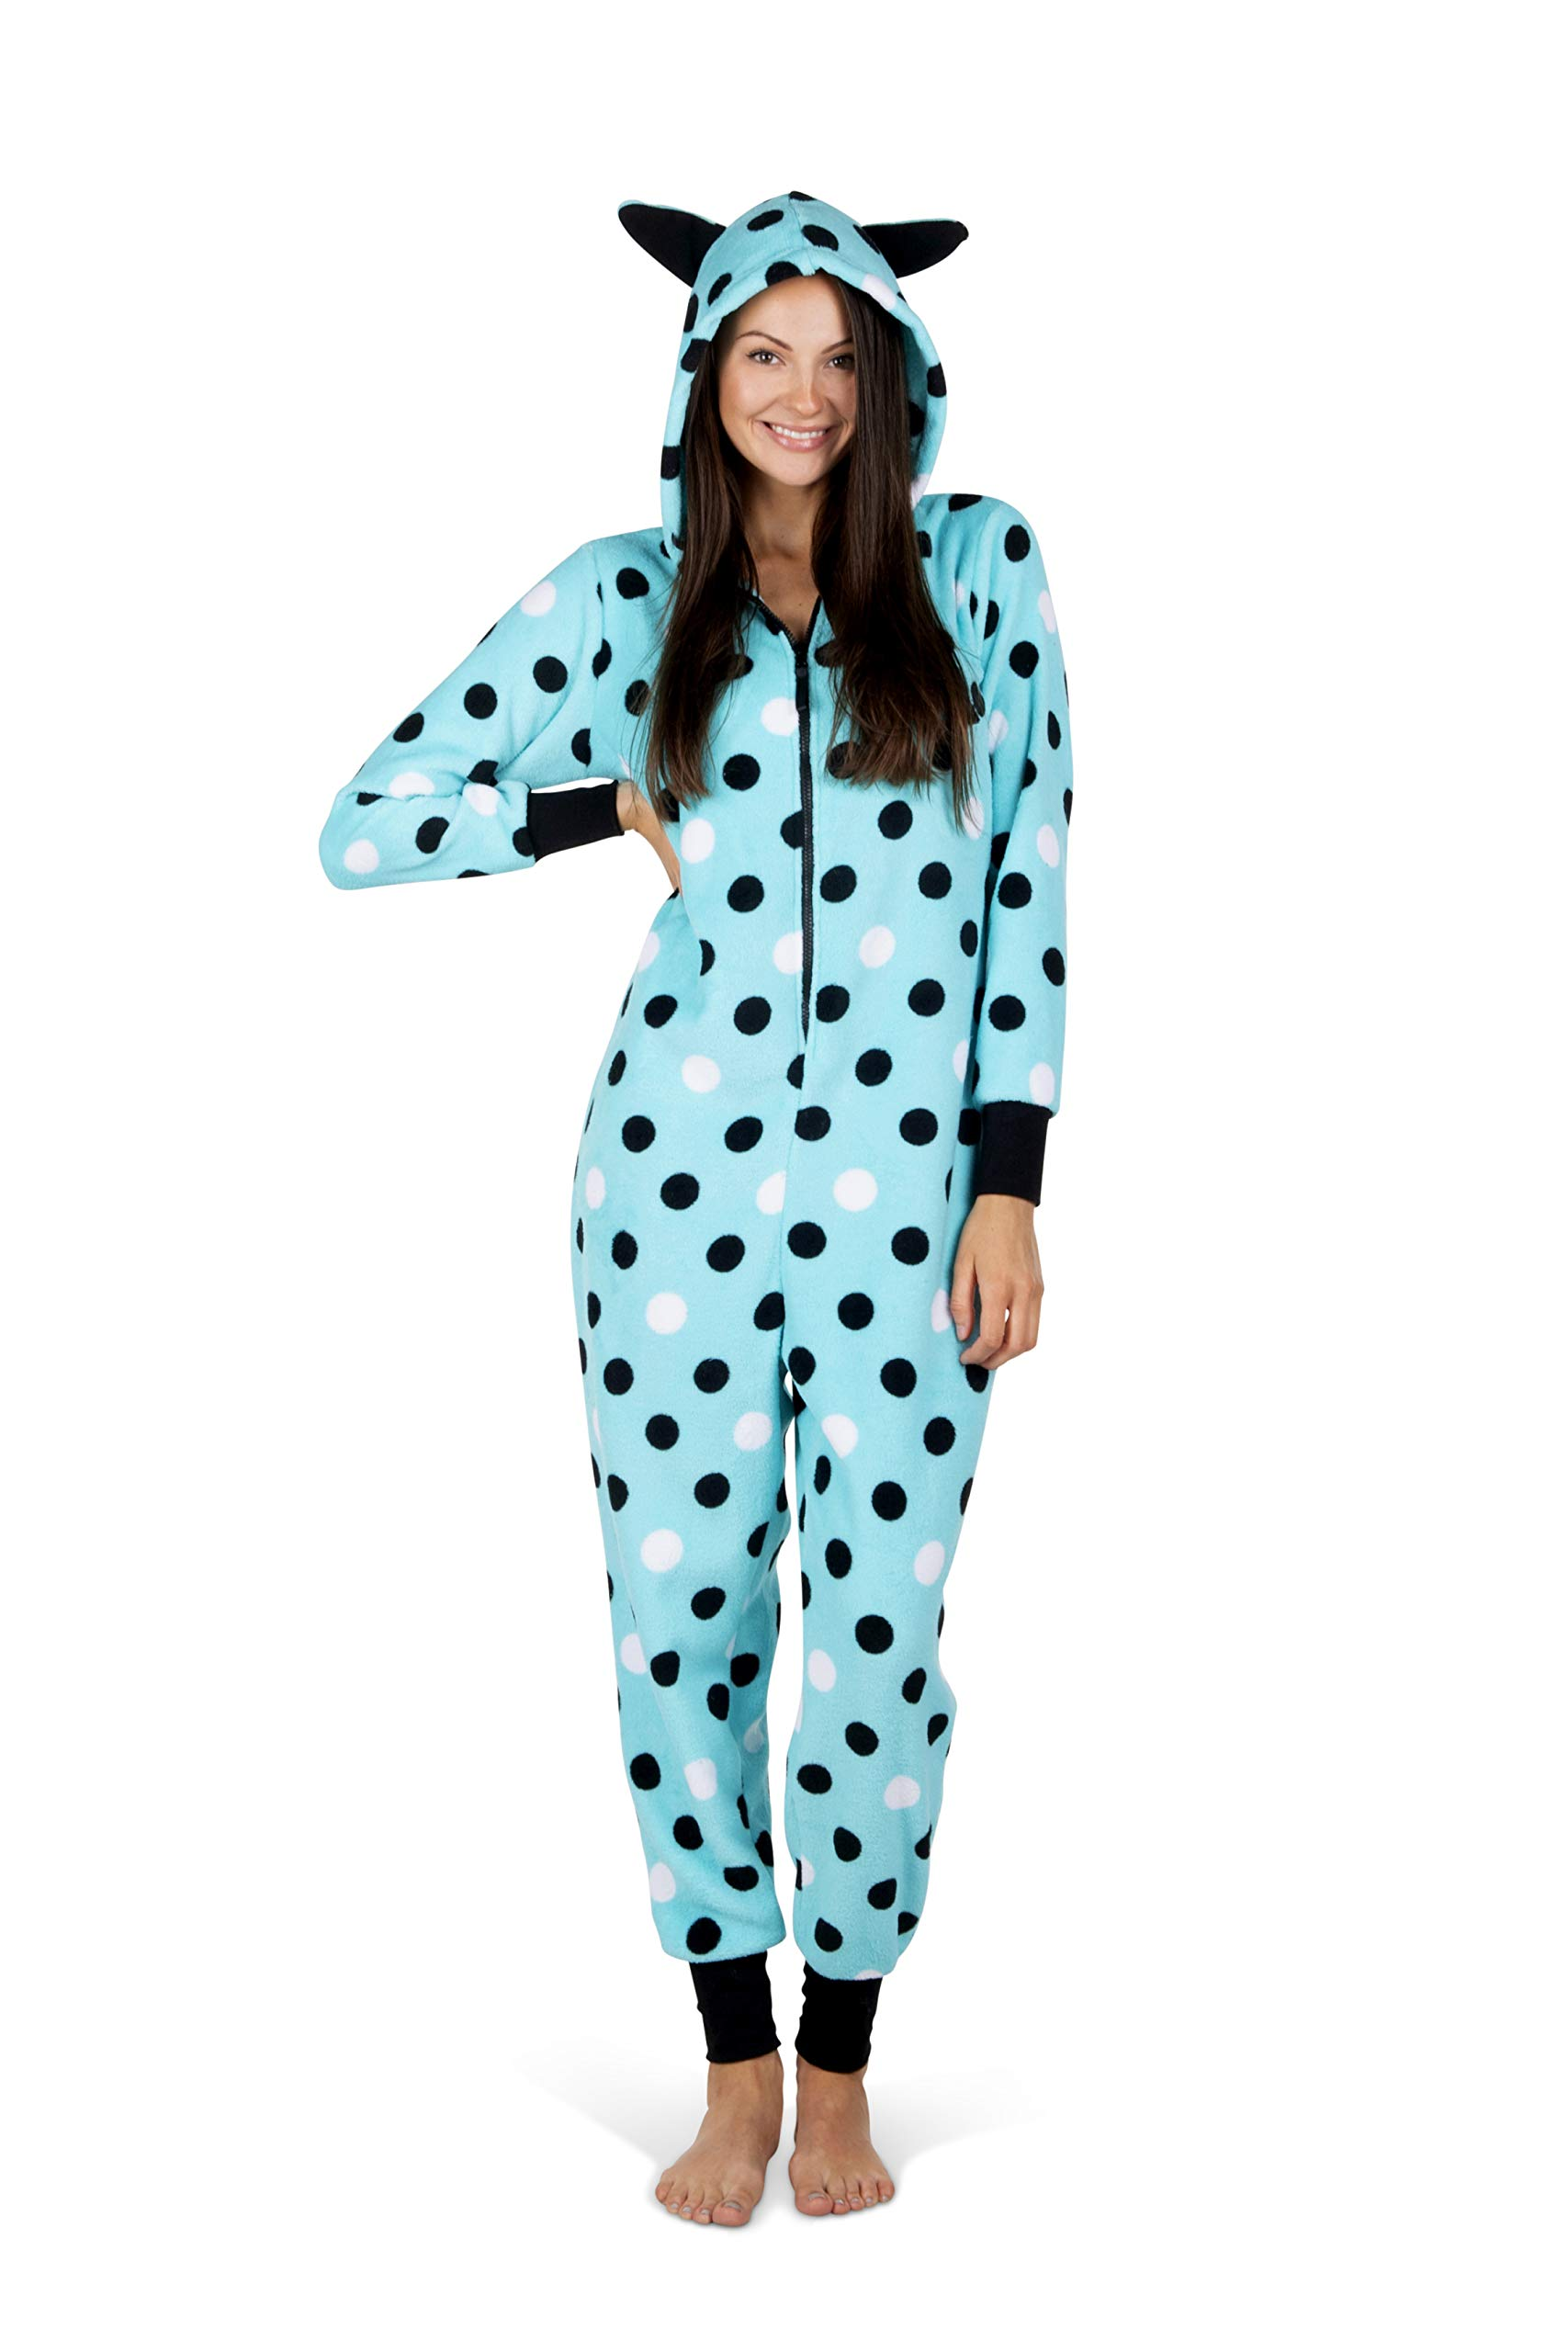 Totally Pink Women's Warm and Cozy Plush Adult Onesies for Women One-Piece Novelty Pajamas (XX-Large, Blue/Polka Dot)